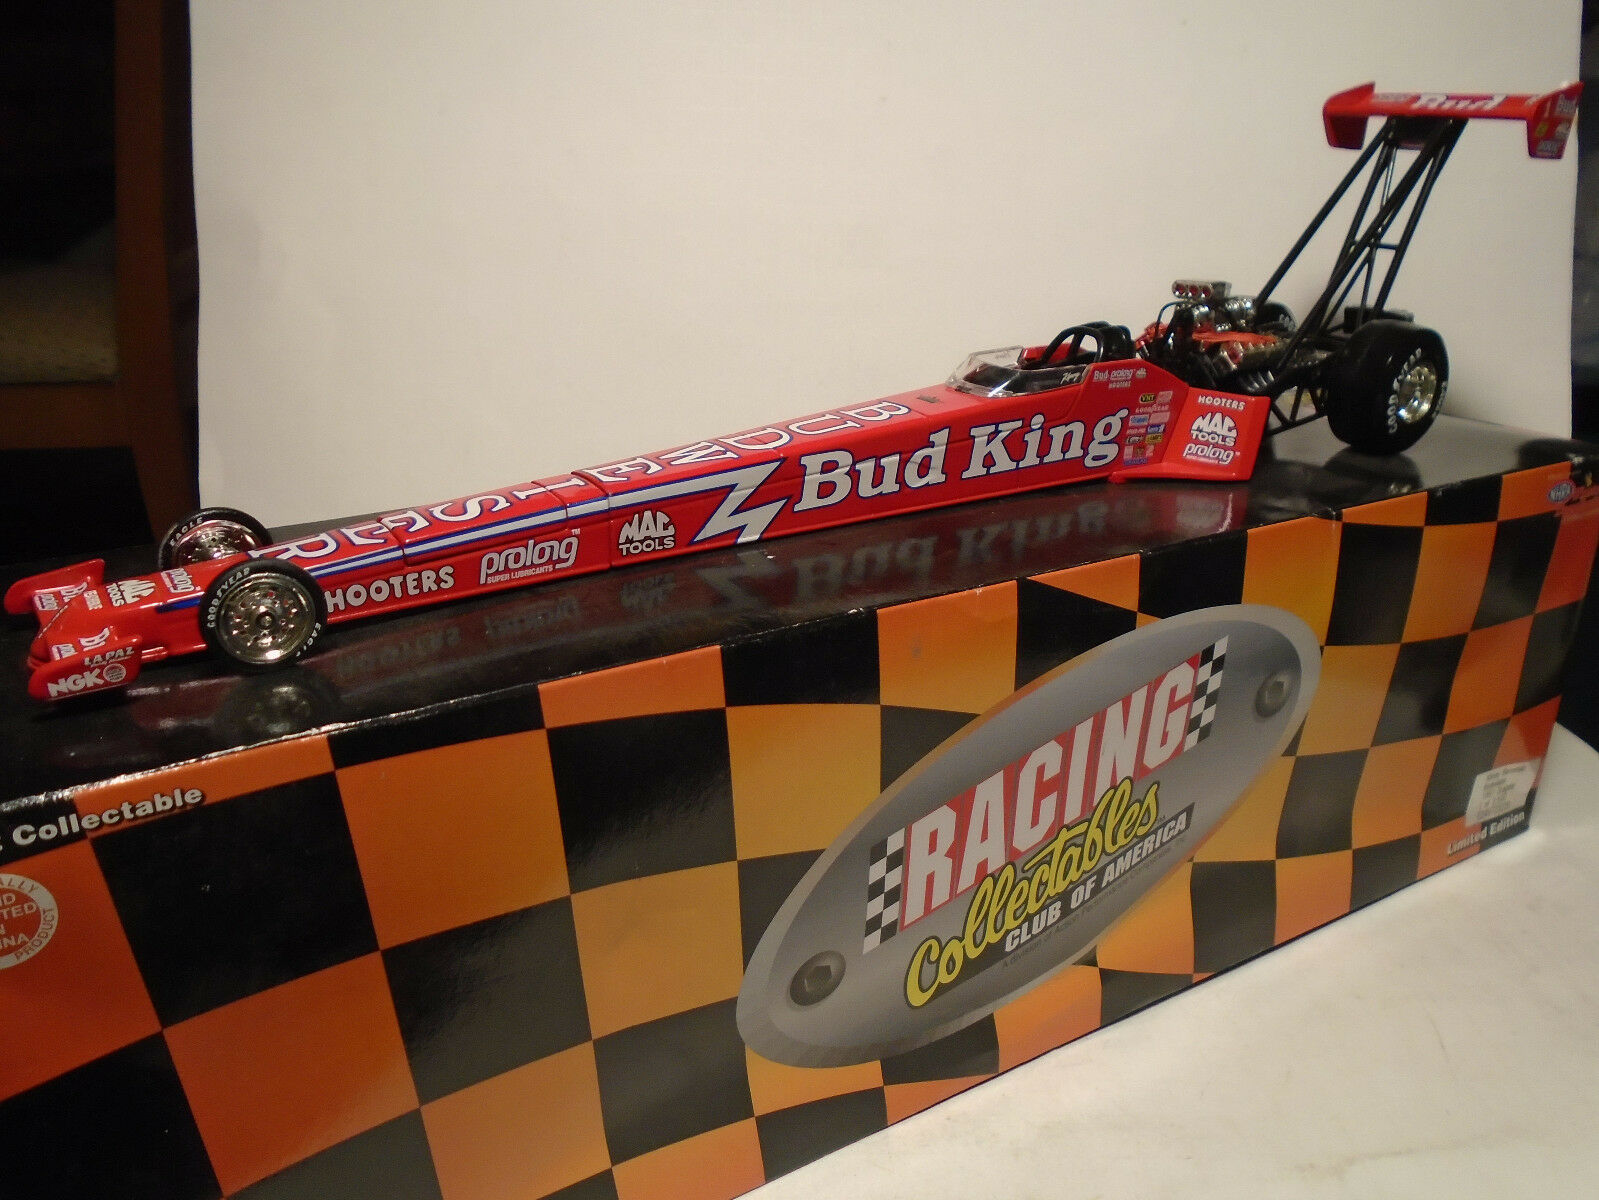 ACTION PERFORMANCE KENNY KENNY KENNY BERNSTEIN BUDWEISER 1997 DRAGSTER NEW IN BOX 5c52b4